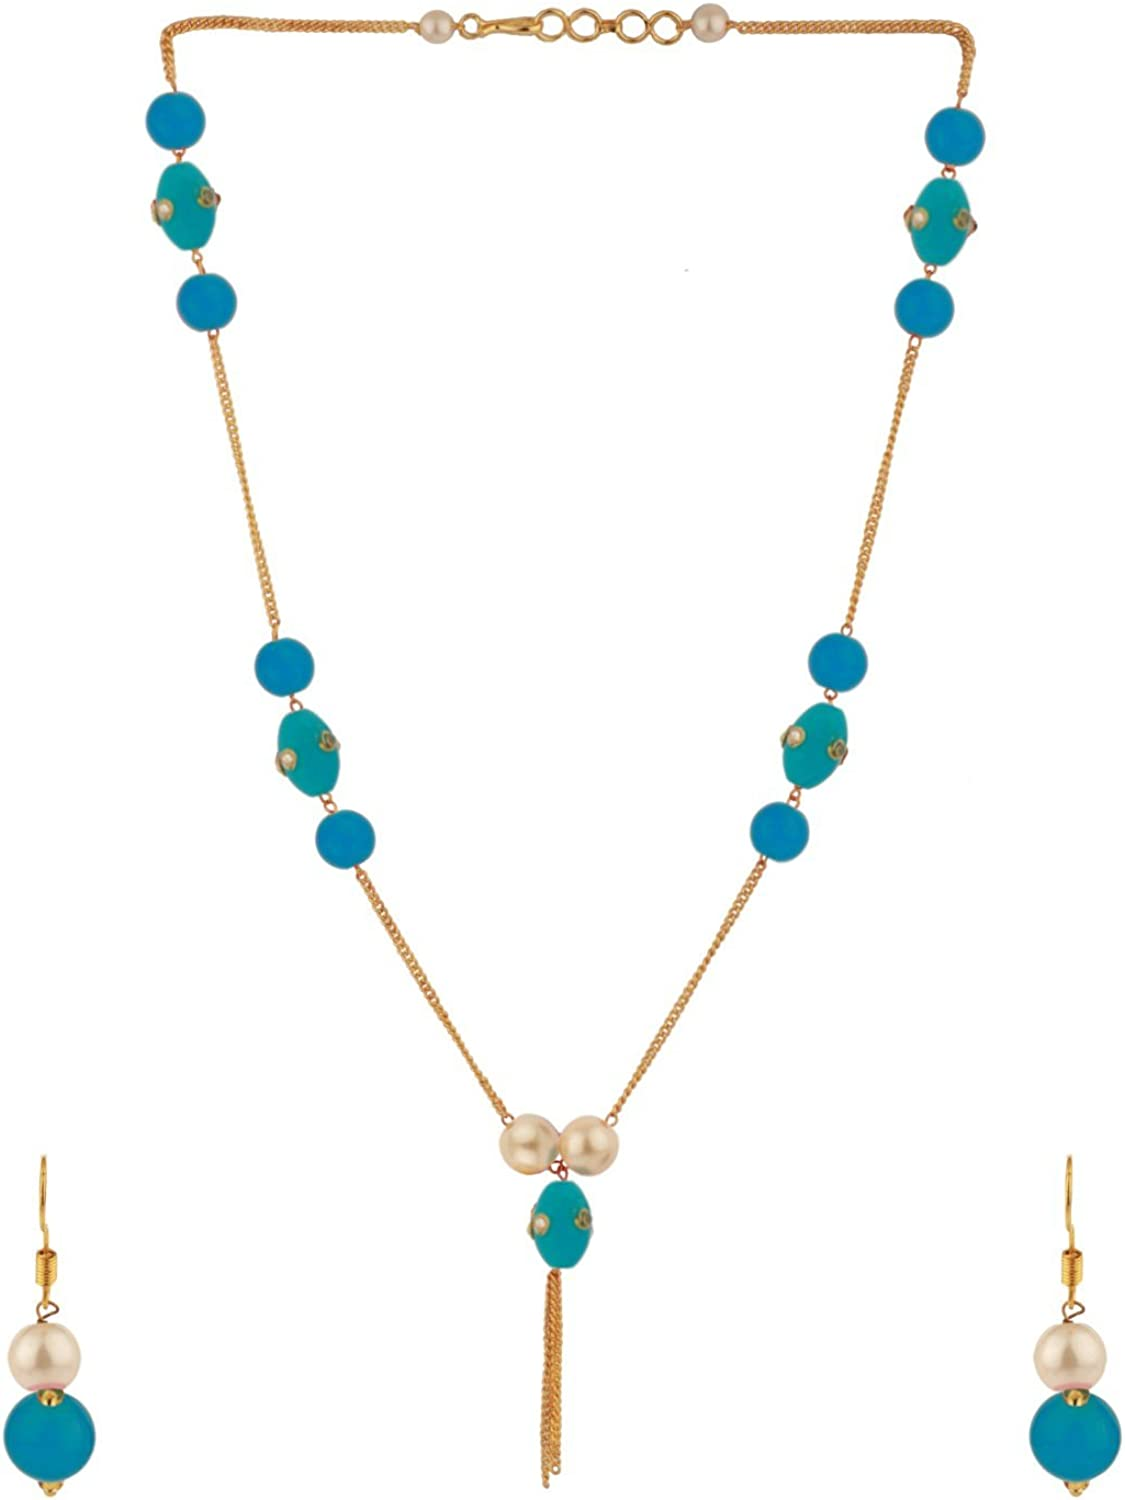 Ethnadore Indian Gold Plated Blue Faux Pearl Beads Strand Neckalce Earrings Set Costume Jewelry